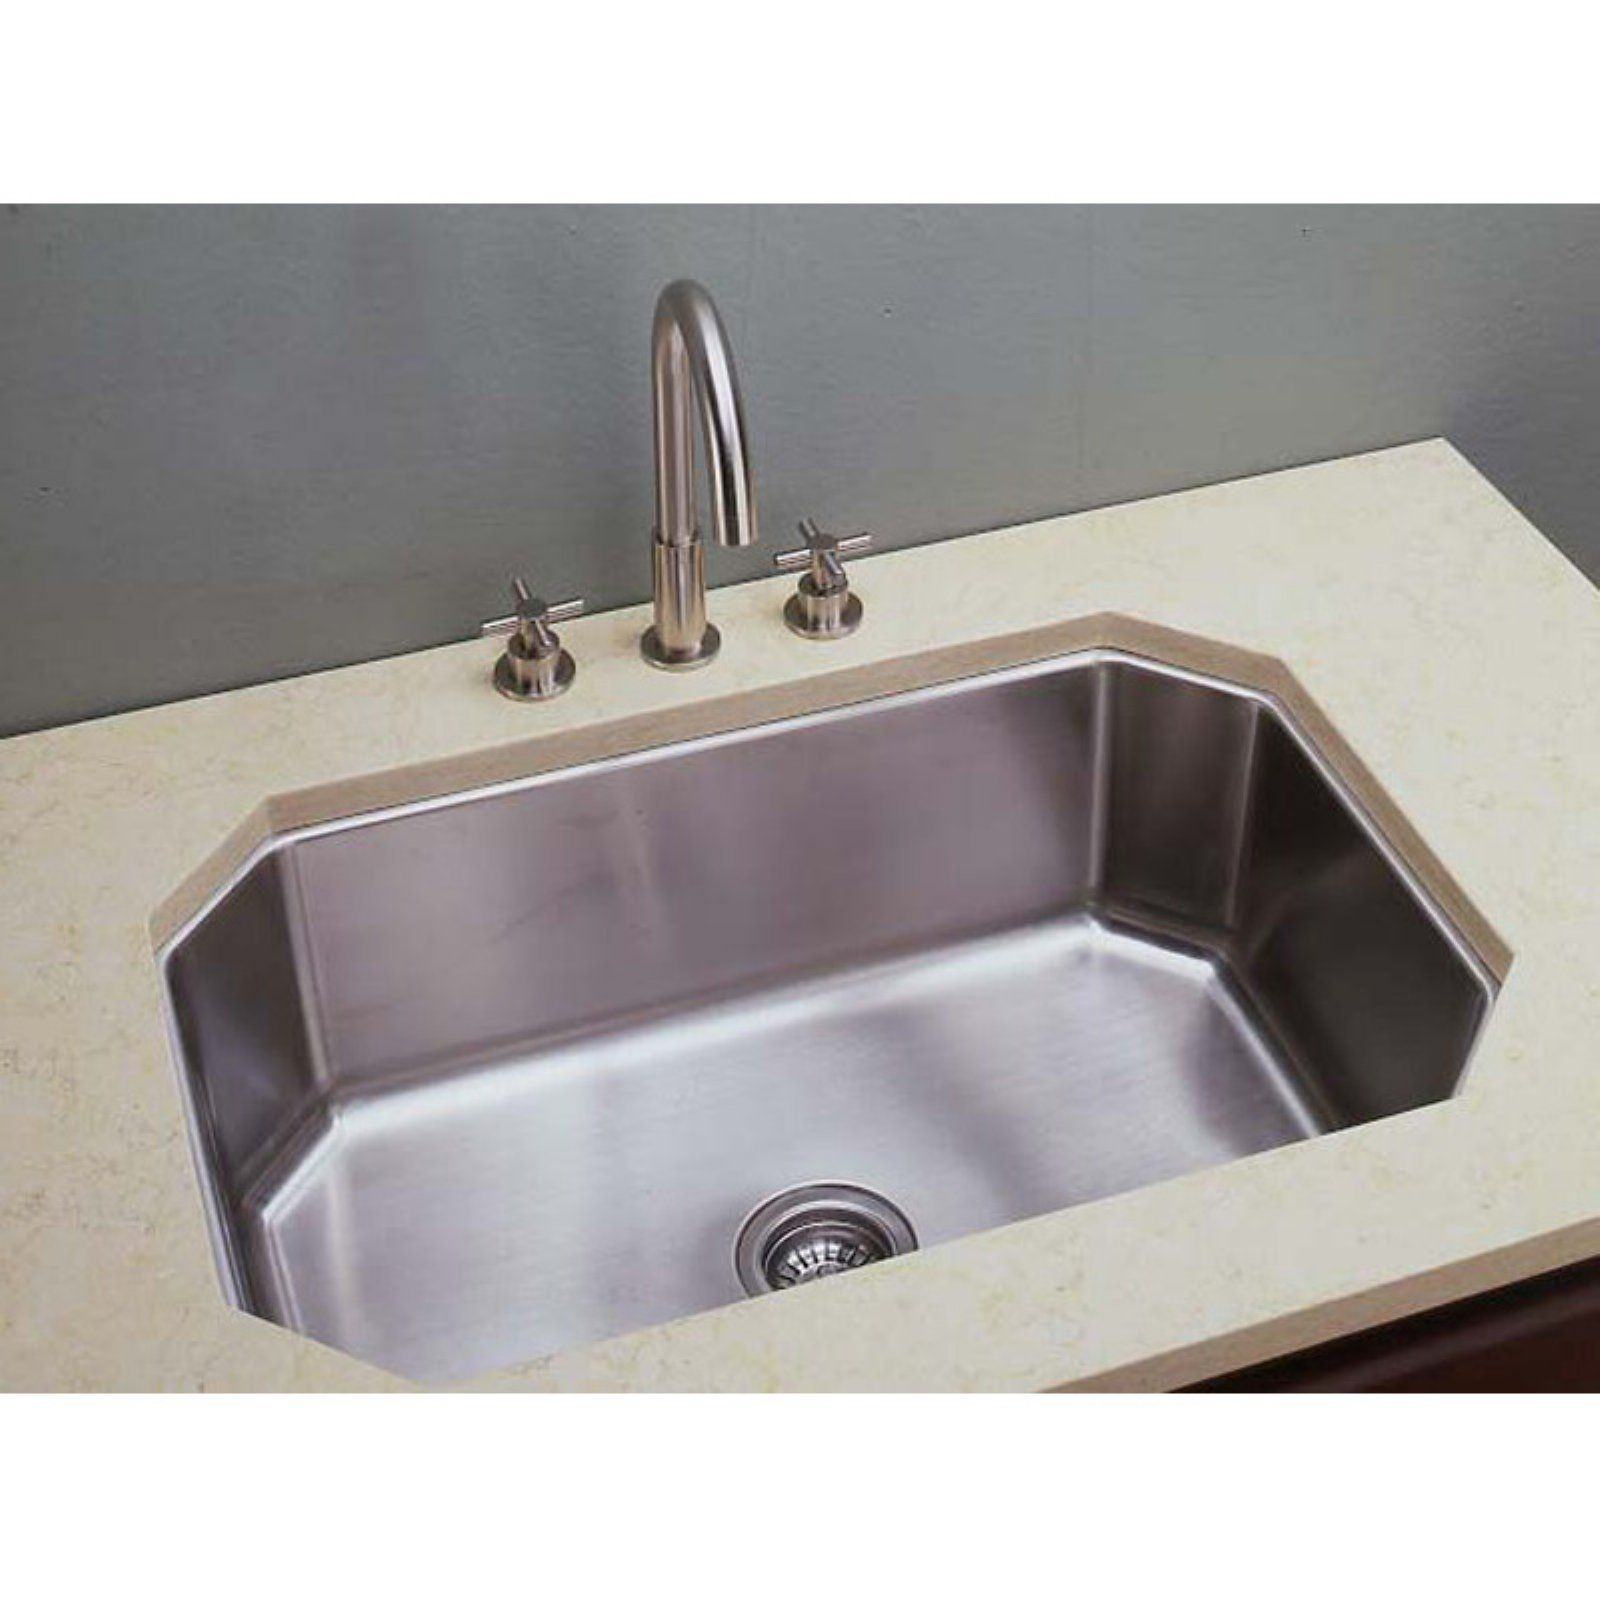 Empire Industries S 17 Single Bowl Undermount Stainless Steel